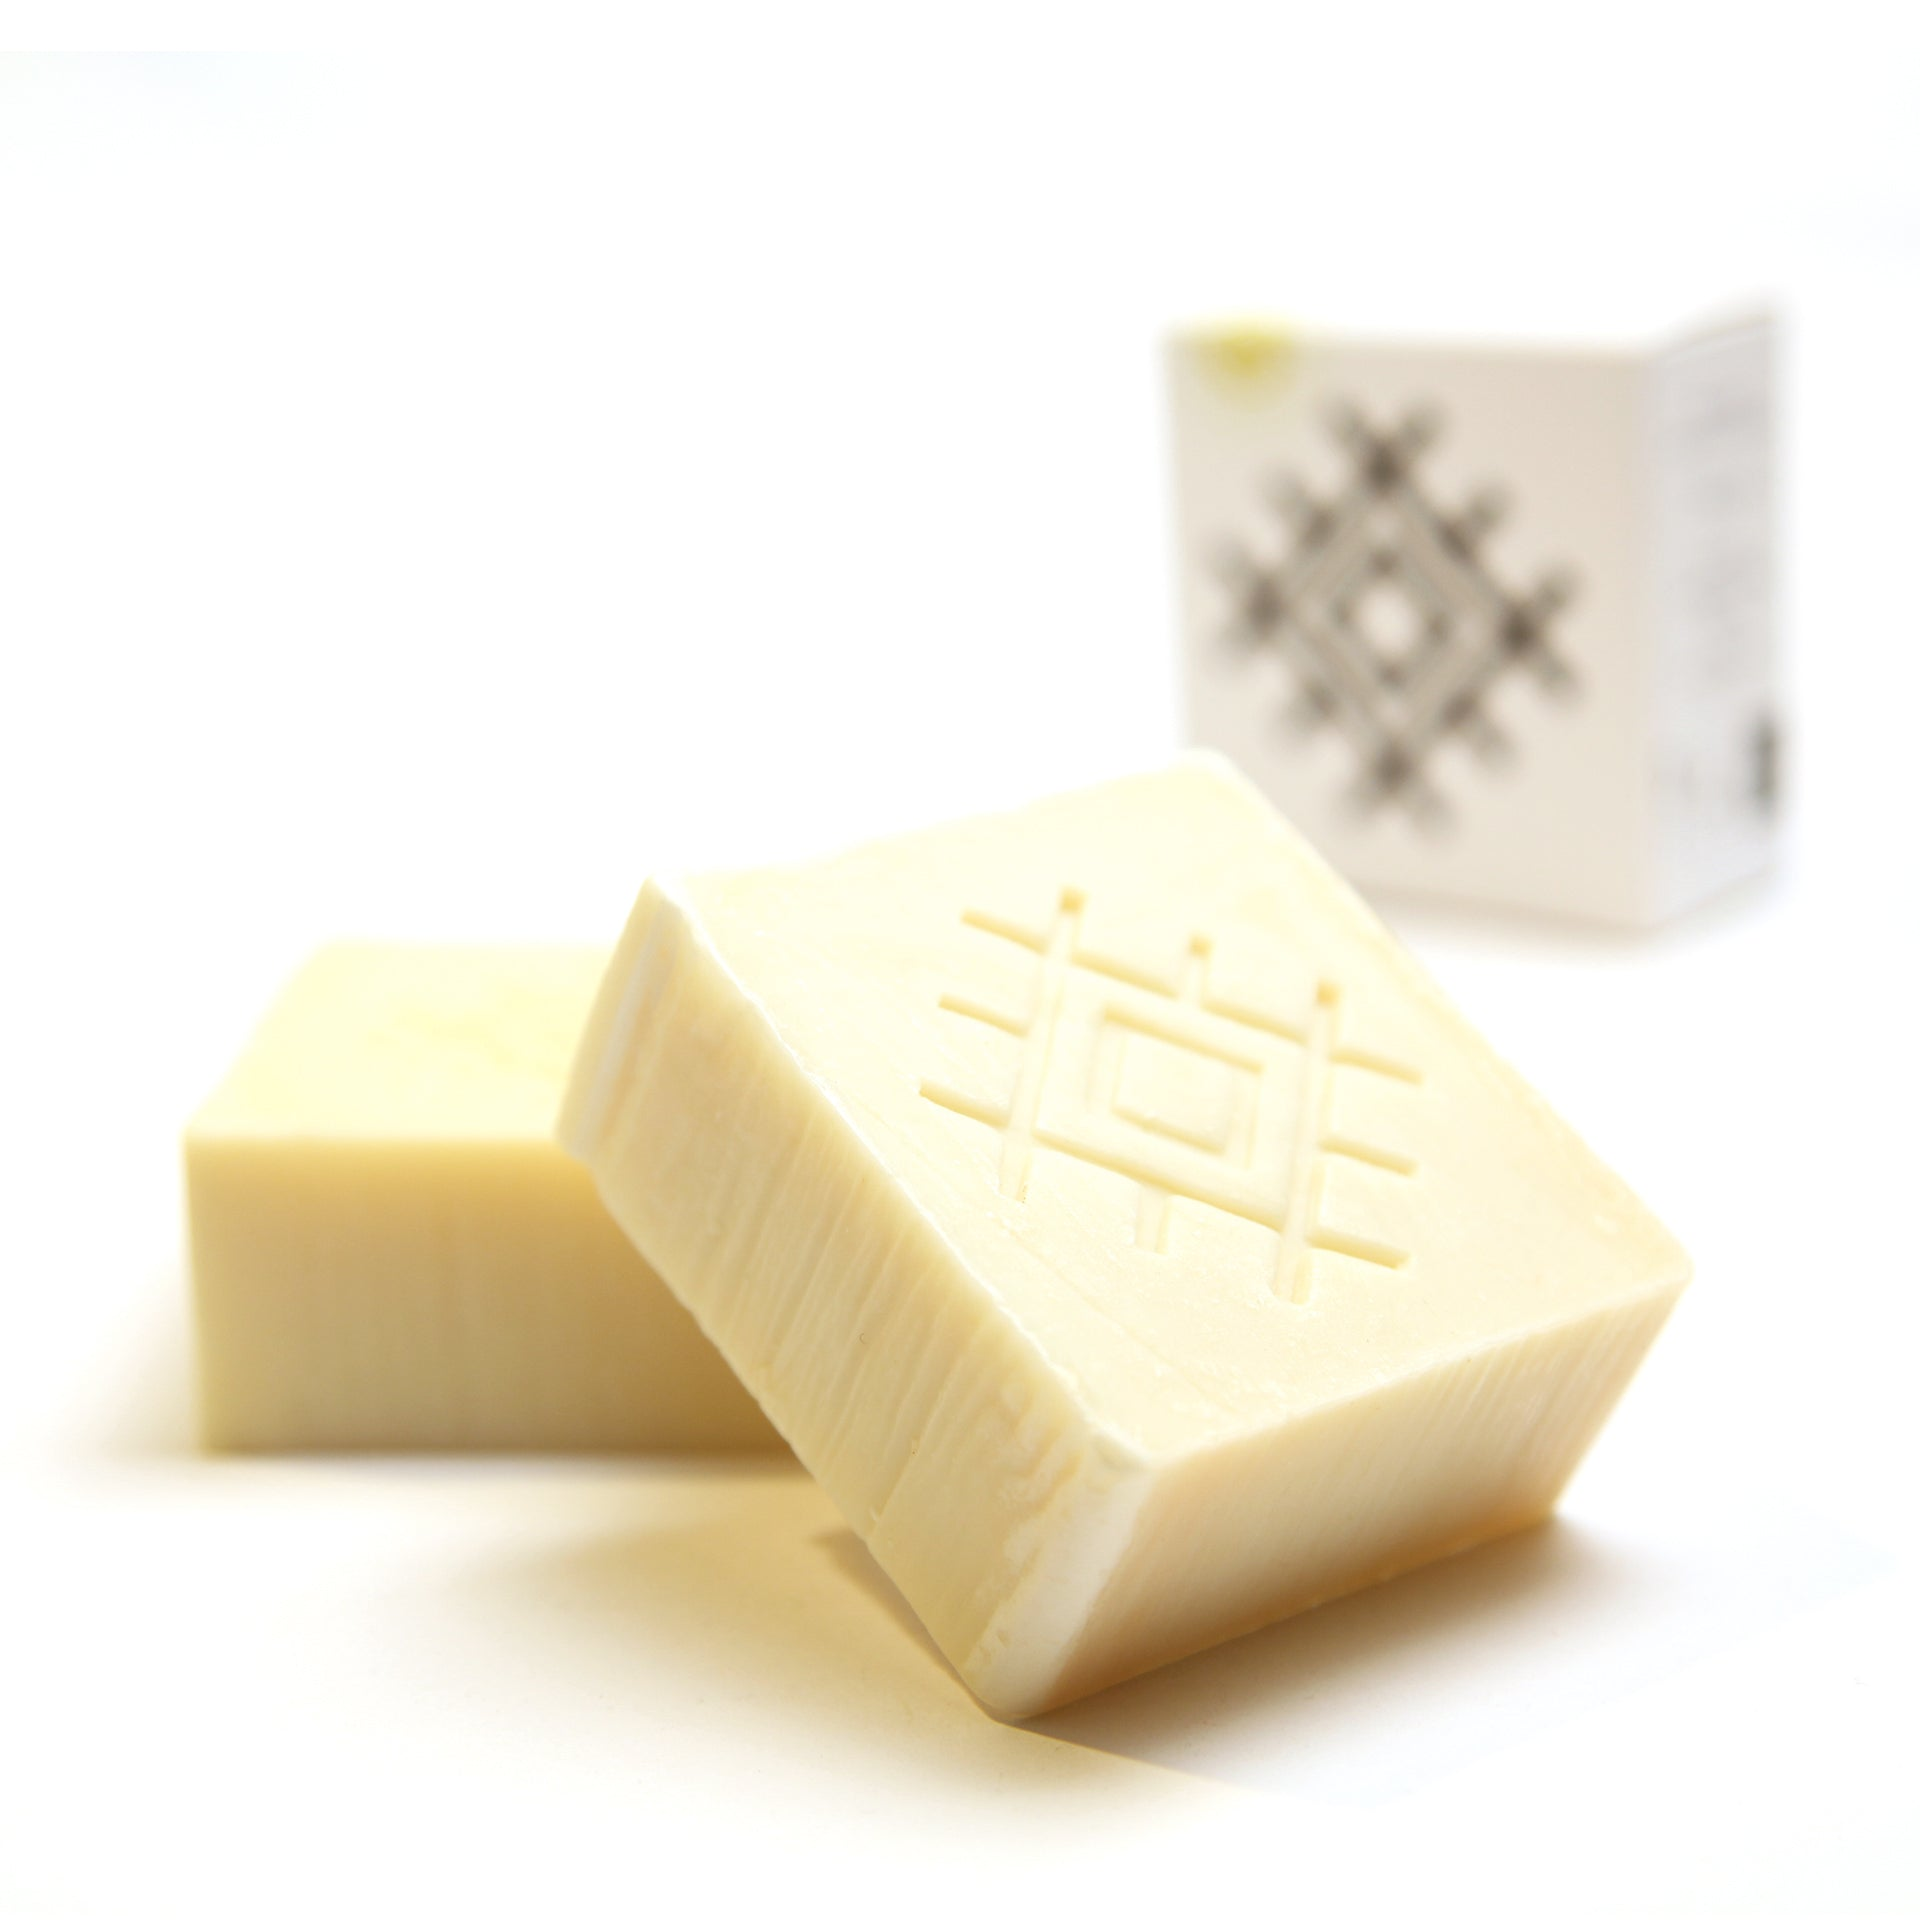 Sabun – Pıtrak (Pürüzsüzlük)    Soap – Cocklebur (Smoothness)